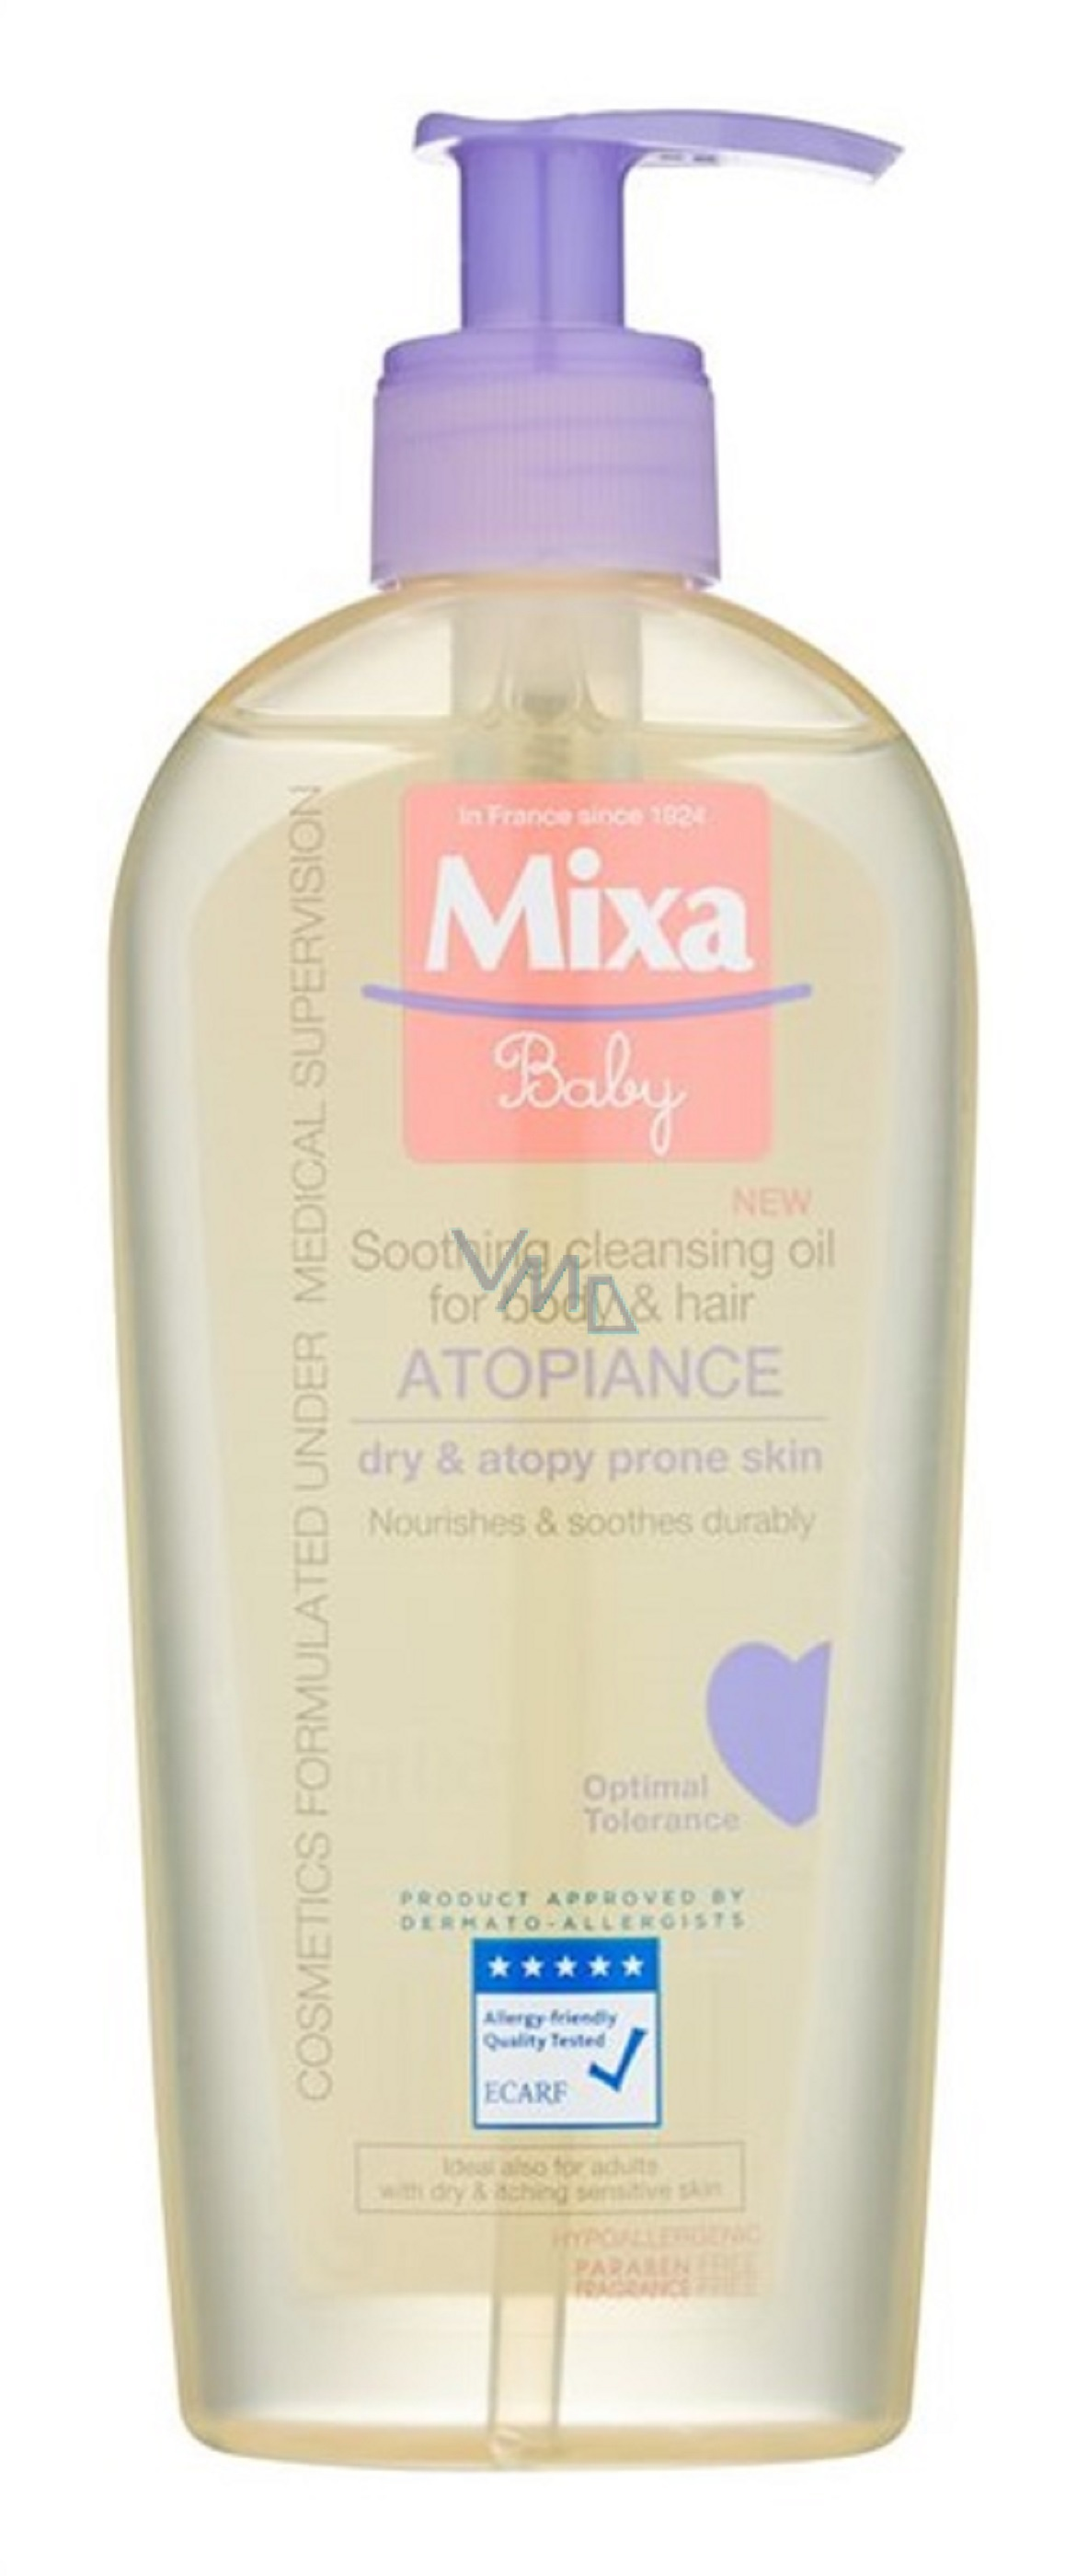 Mixa Atopiance Oil For Body And Hair